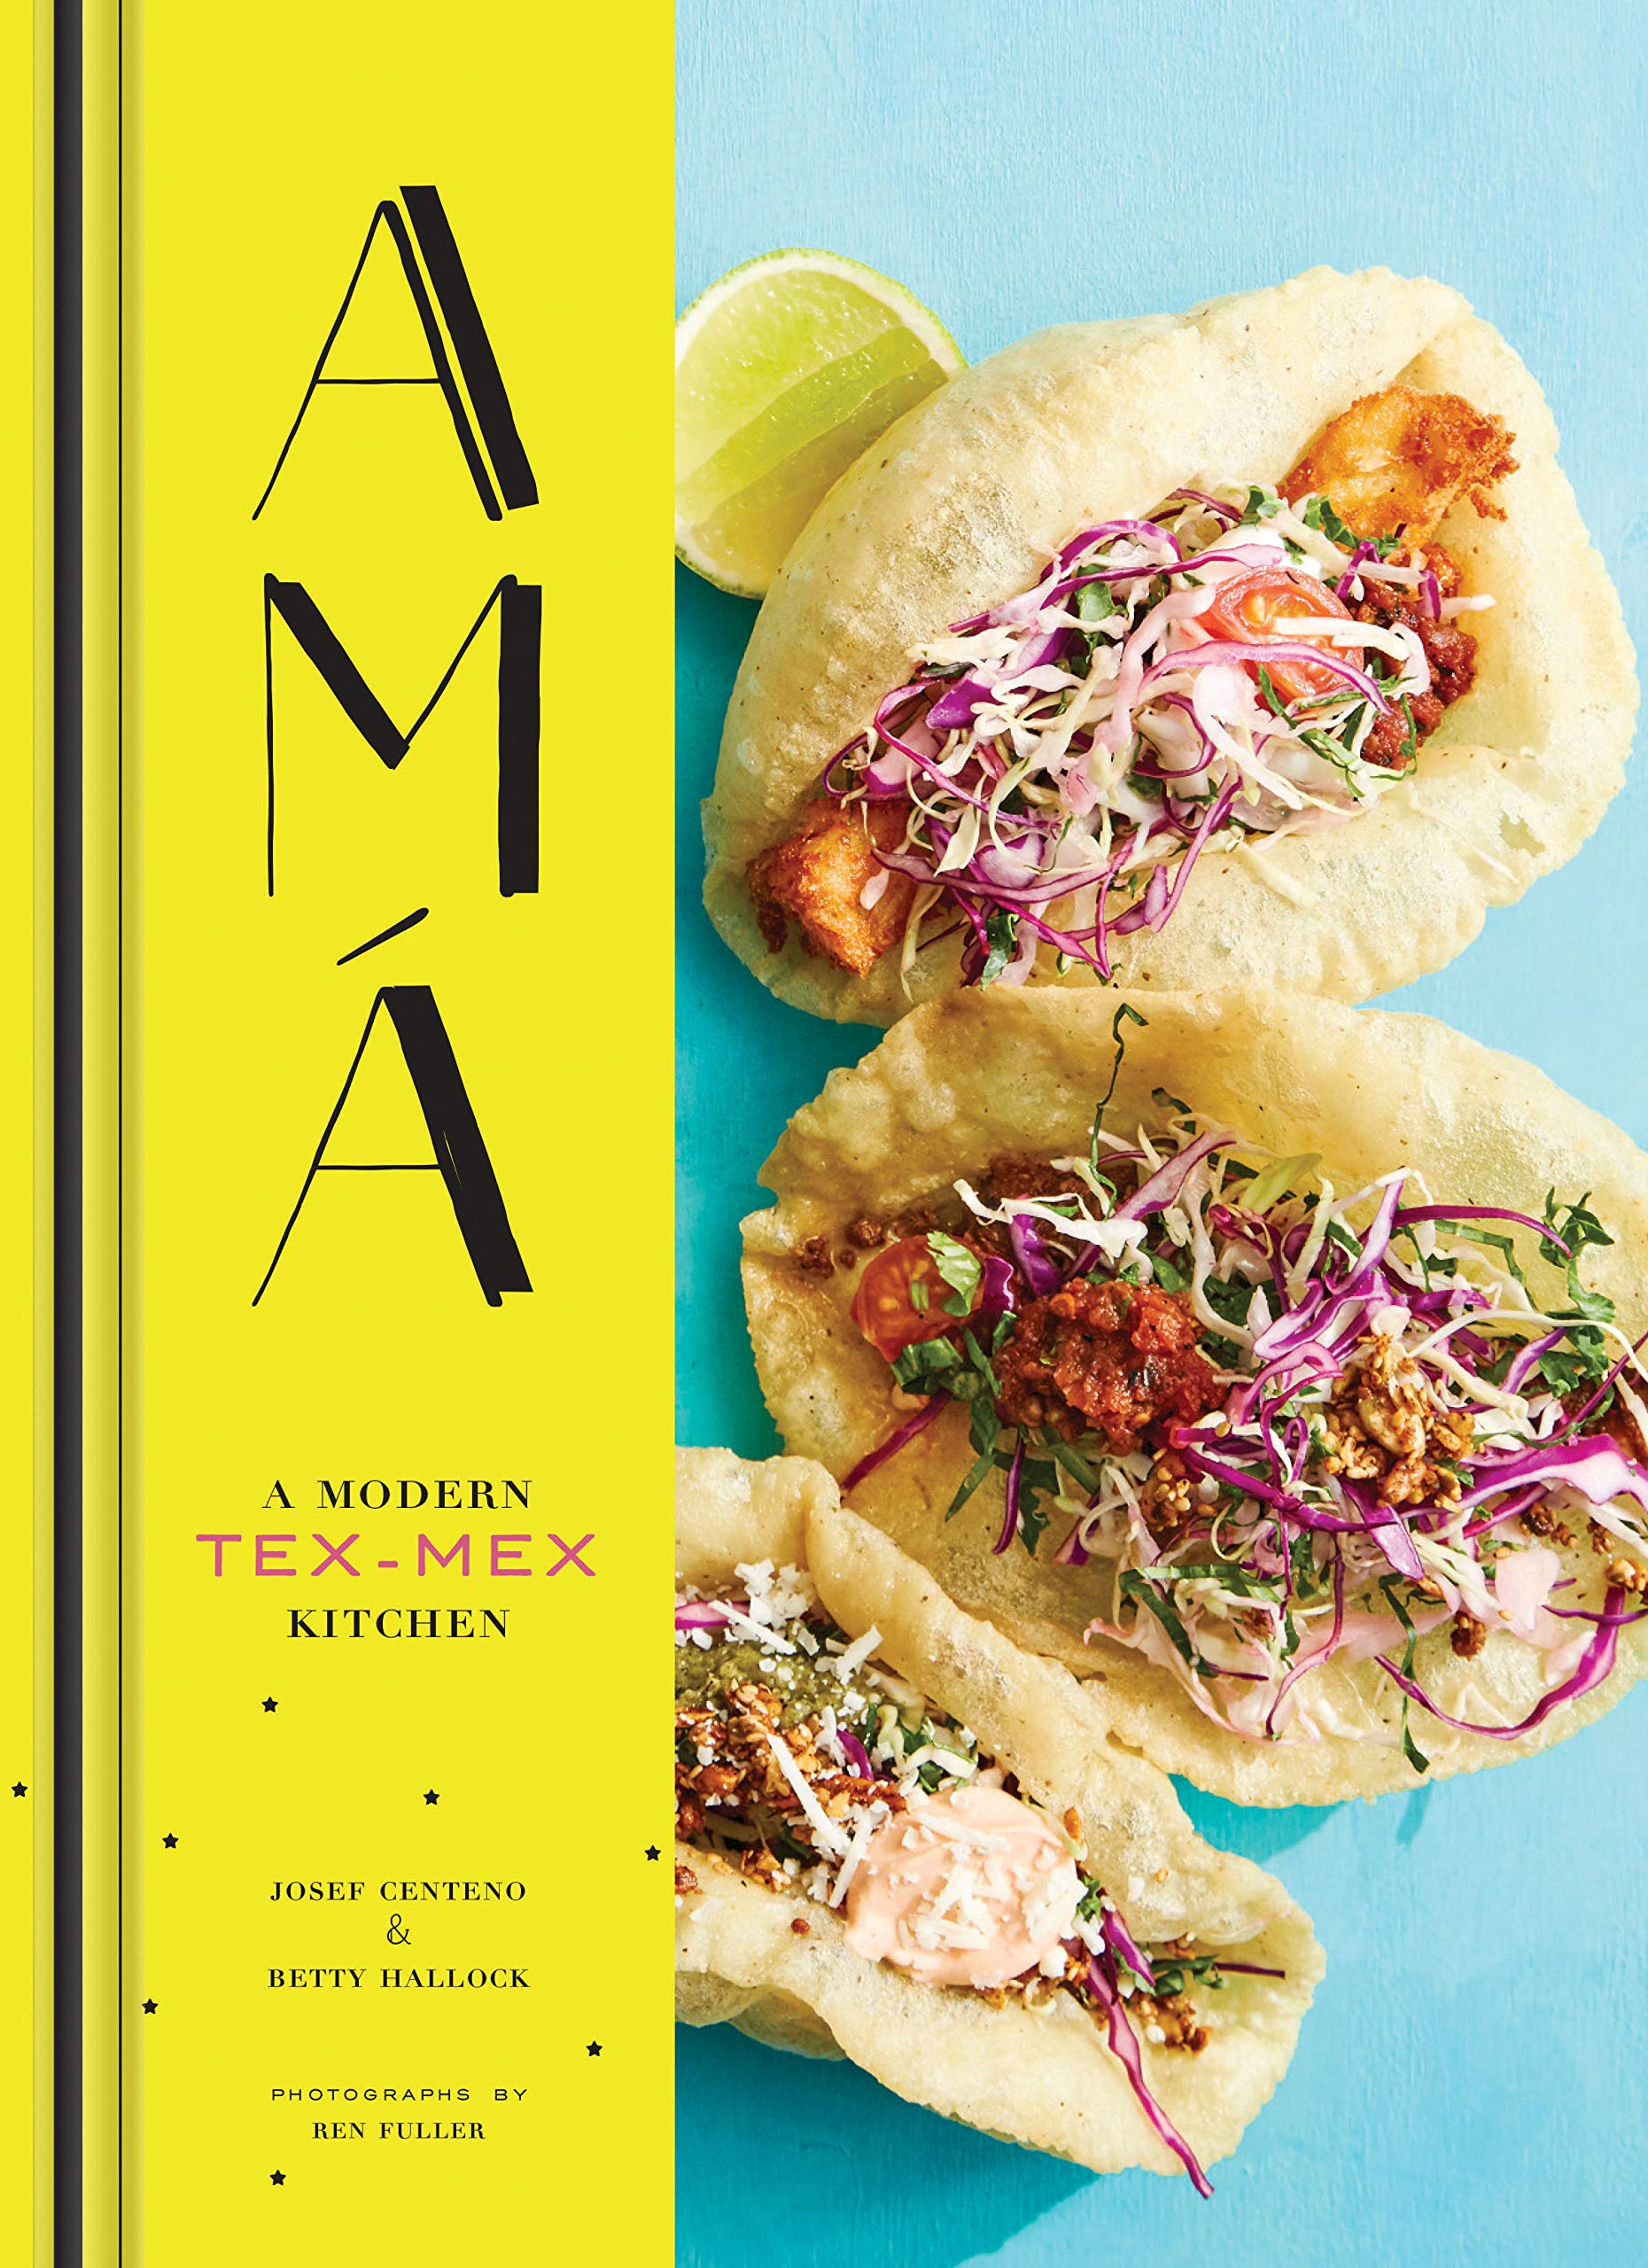 Ama: A Modern Tex-Mex Kitchen (Mexican Food Cookbooks, Tex-Mex Cooking, Mexican and Spanish Recipes) by Chronicle Books